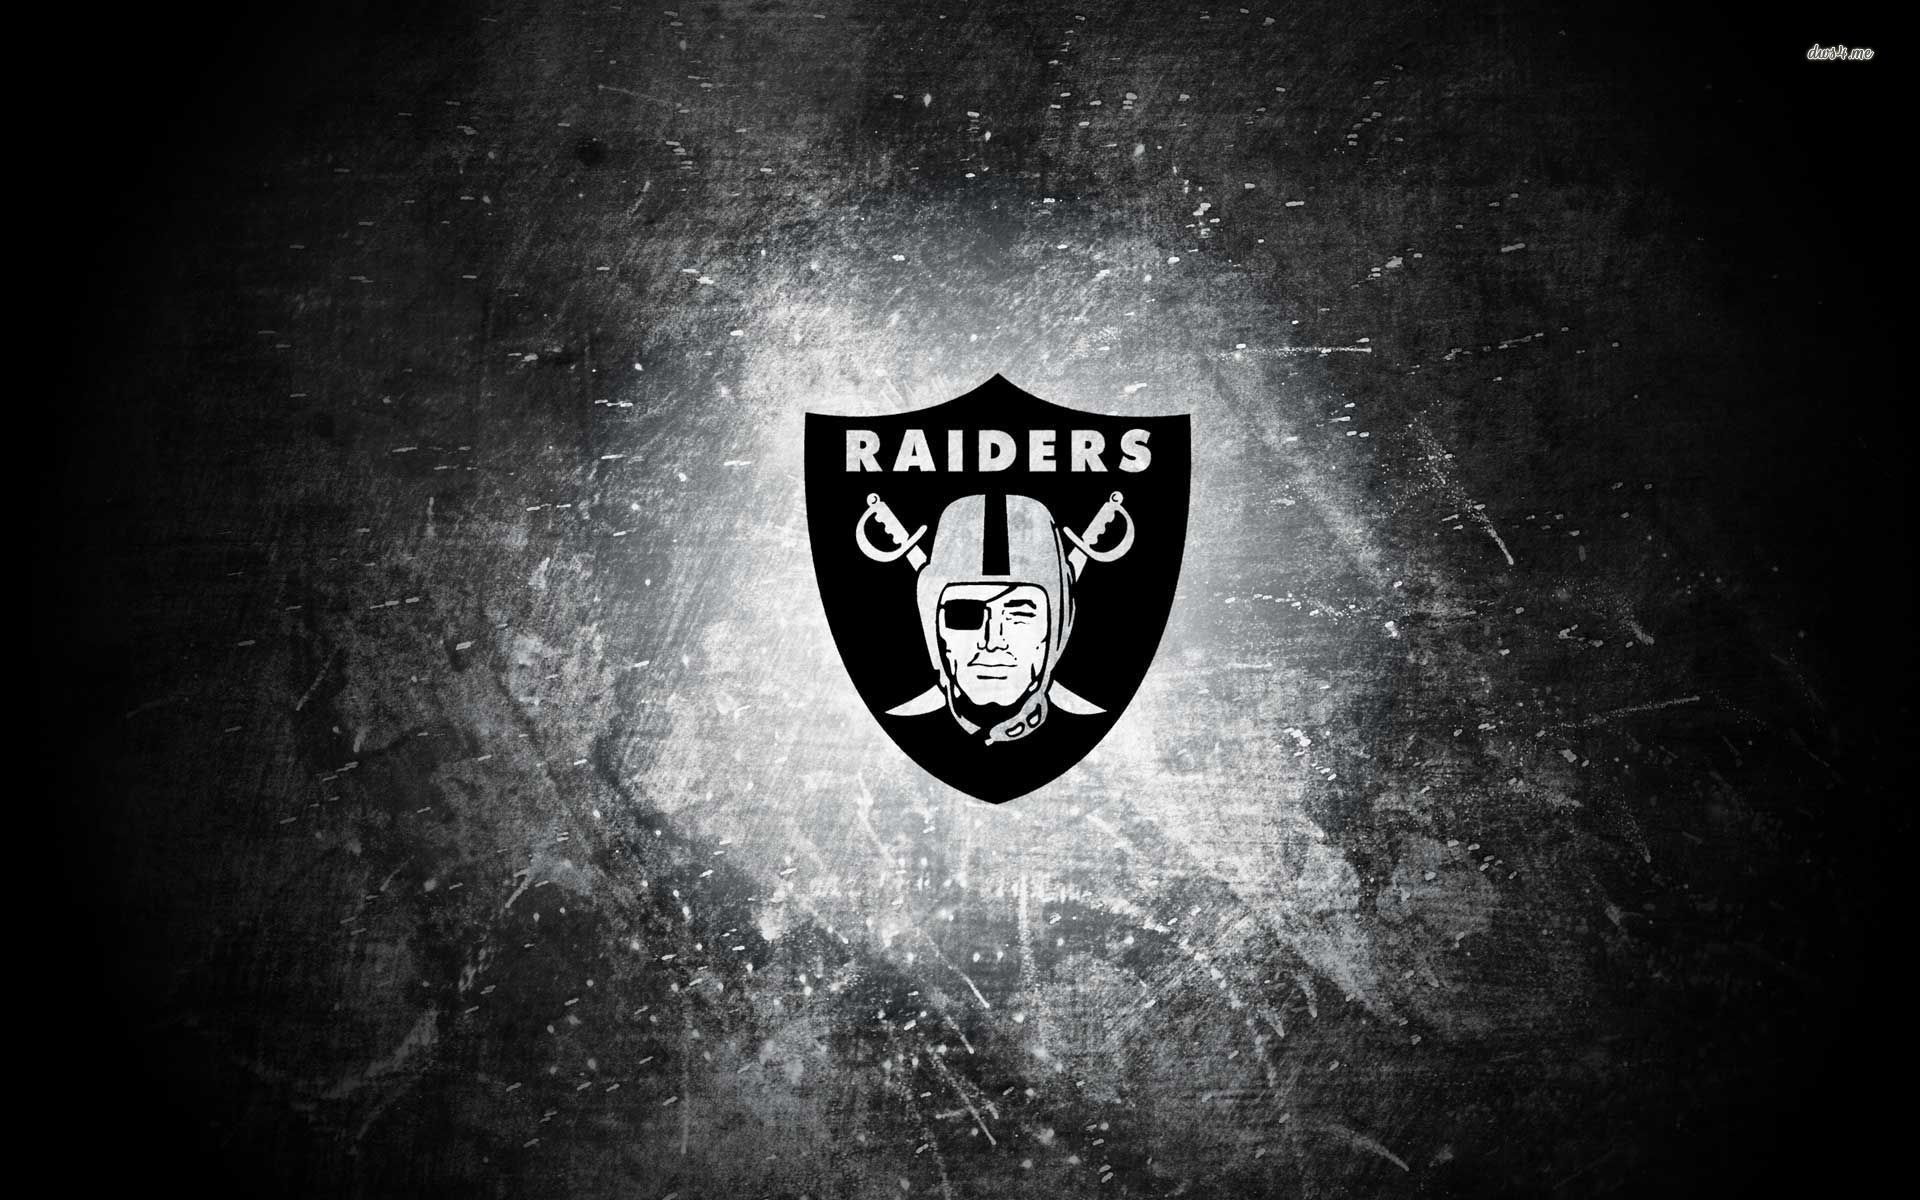 82+ cool raiders wallpapers on wallpaperplay